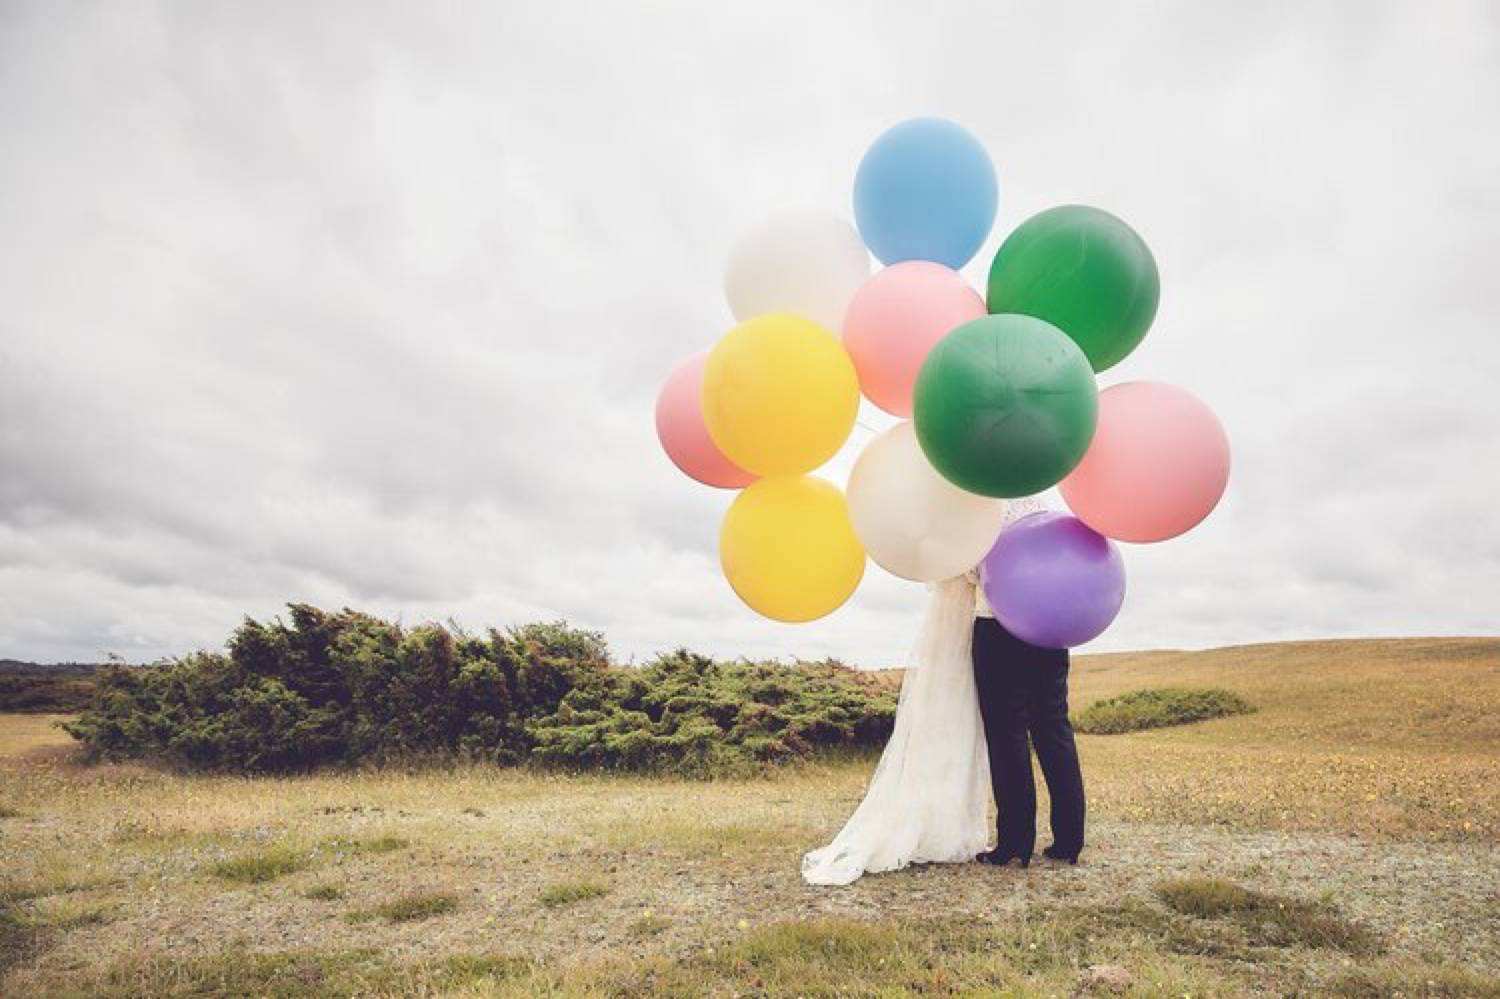 Photo: Mille Stengaard's portrait of a bride and groom is shot against a plane, grey sky. The couple holds a massive bunch of colorful balloons that hides their faces.